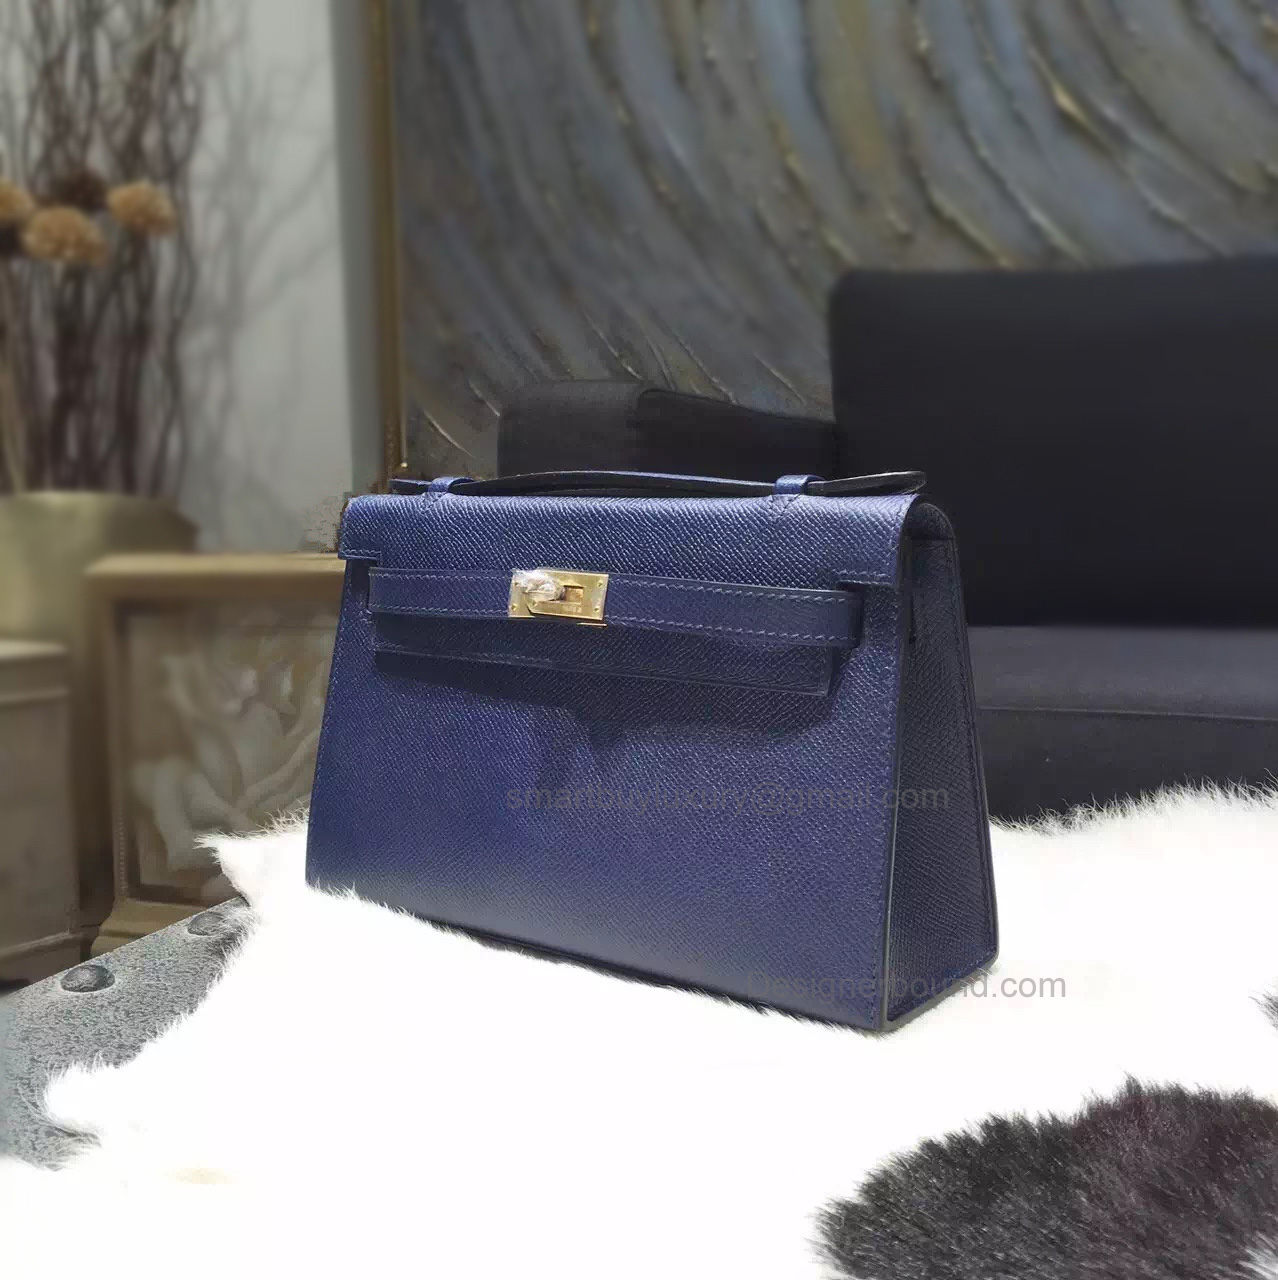 Copy Hermes Mini Kelly 22 Pochette Bag in ck37 Blue Saphir Epsom Calfskin GHW